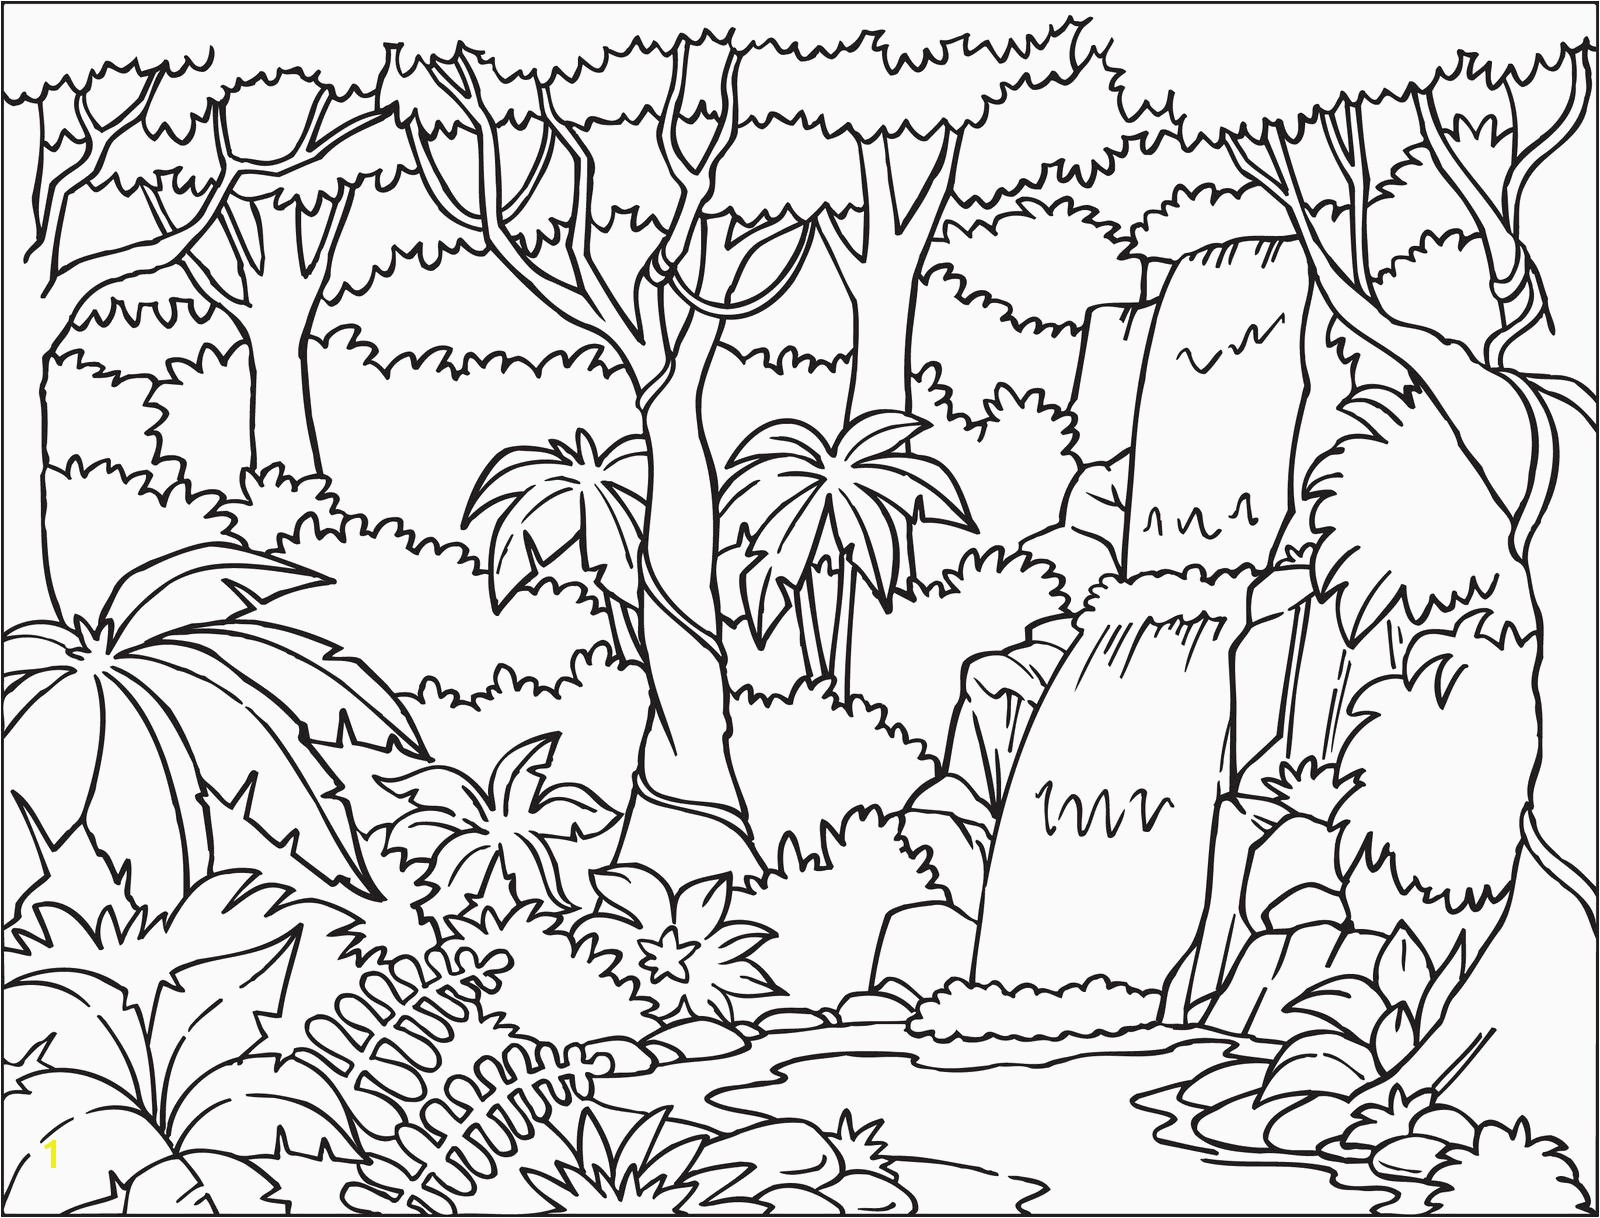 rainforest coloring sheet rainforest coloring pages inspirational rainforest flowers coloring pages